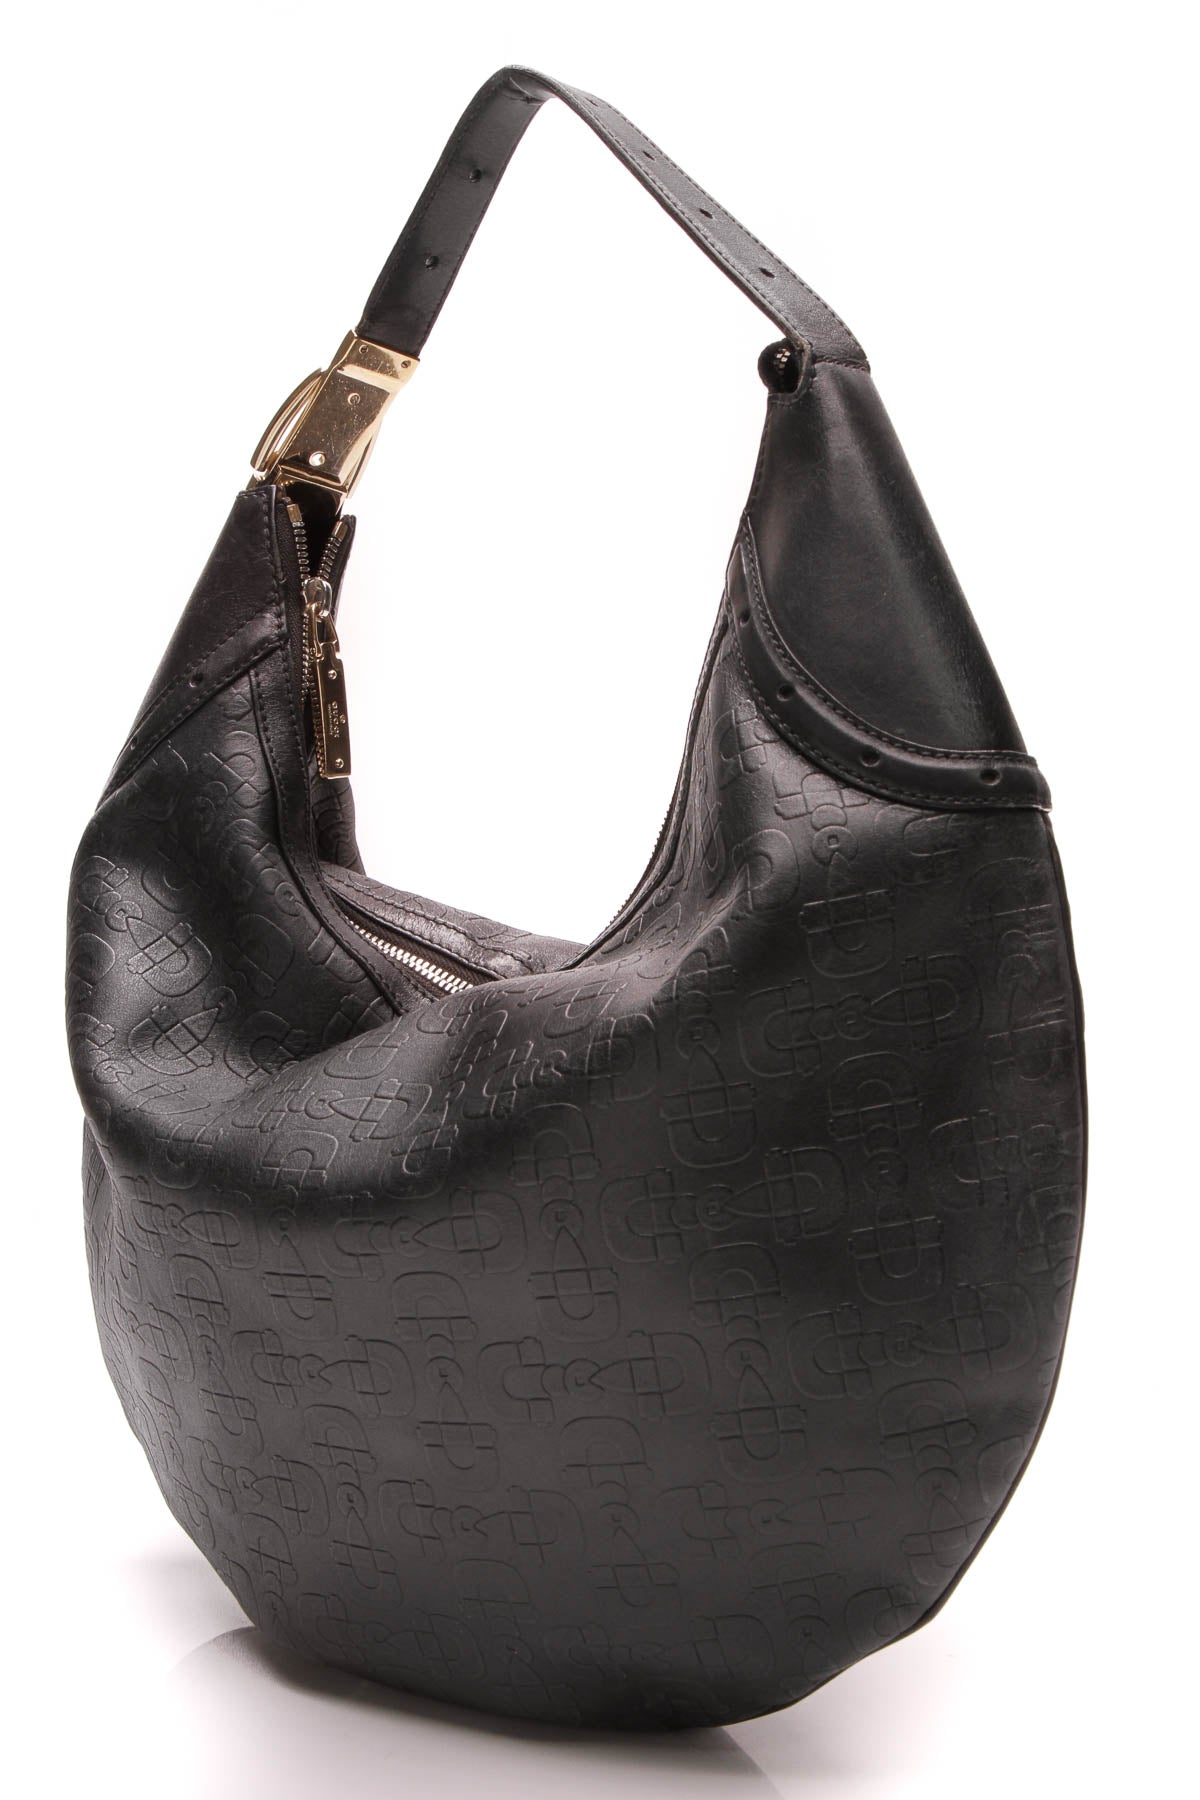 3cd5149d56f Gucci Glam Hobo Bag - Horsebit Embossed Leather – Couture USA